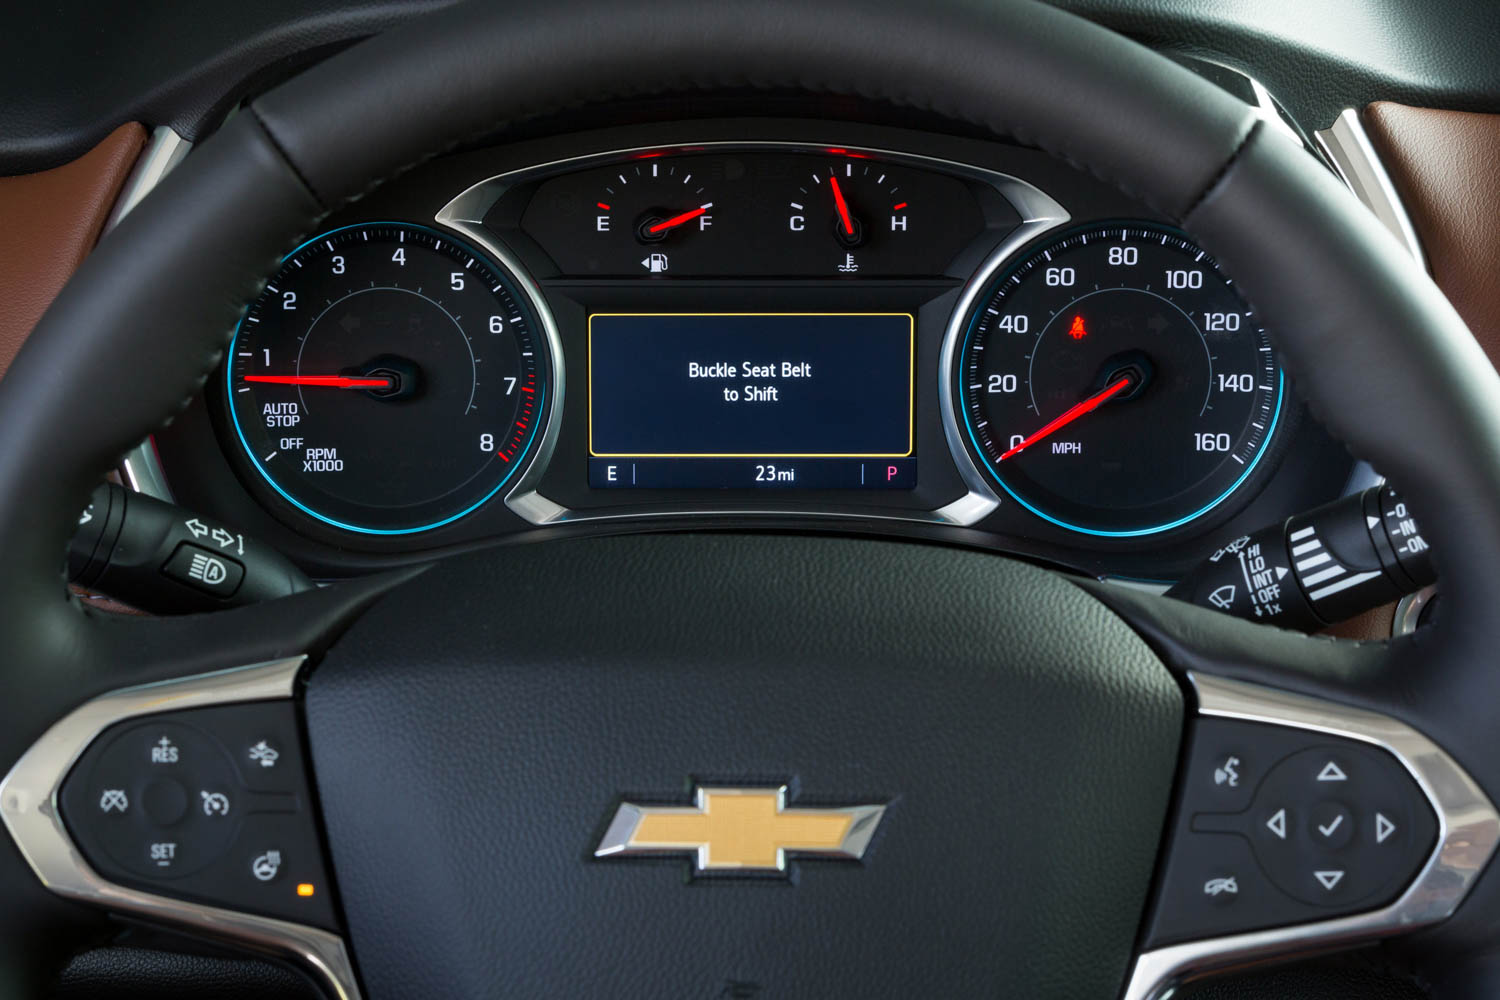 Chevrolet's Teen Driver system buckle up